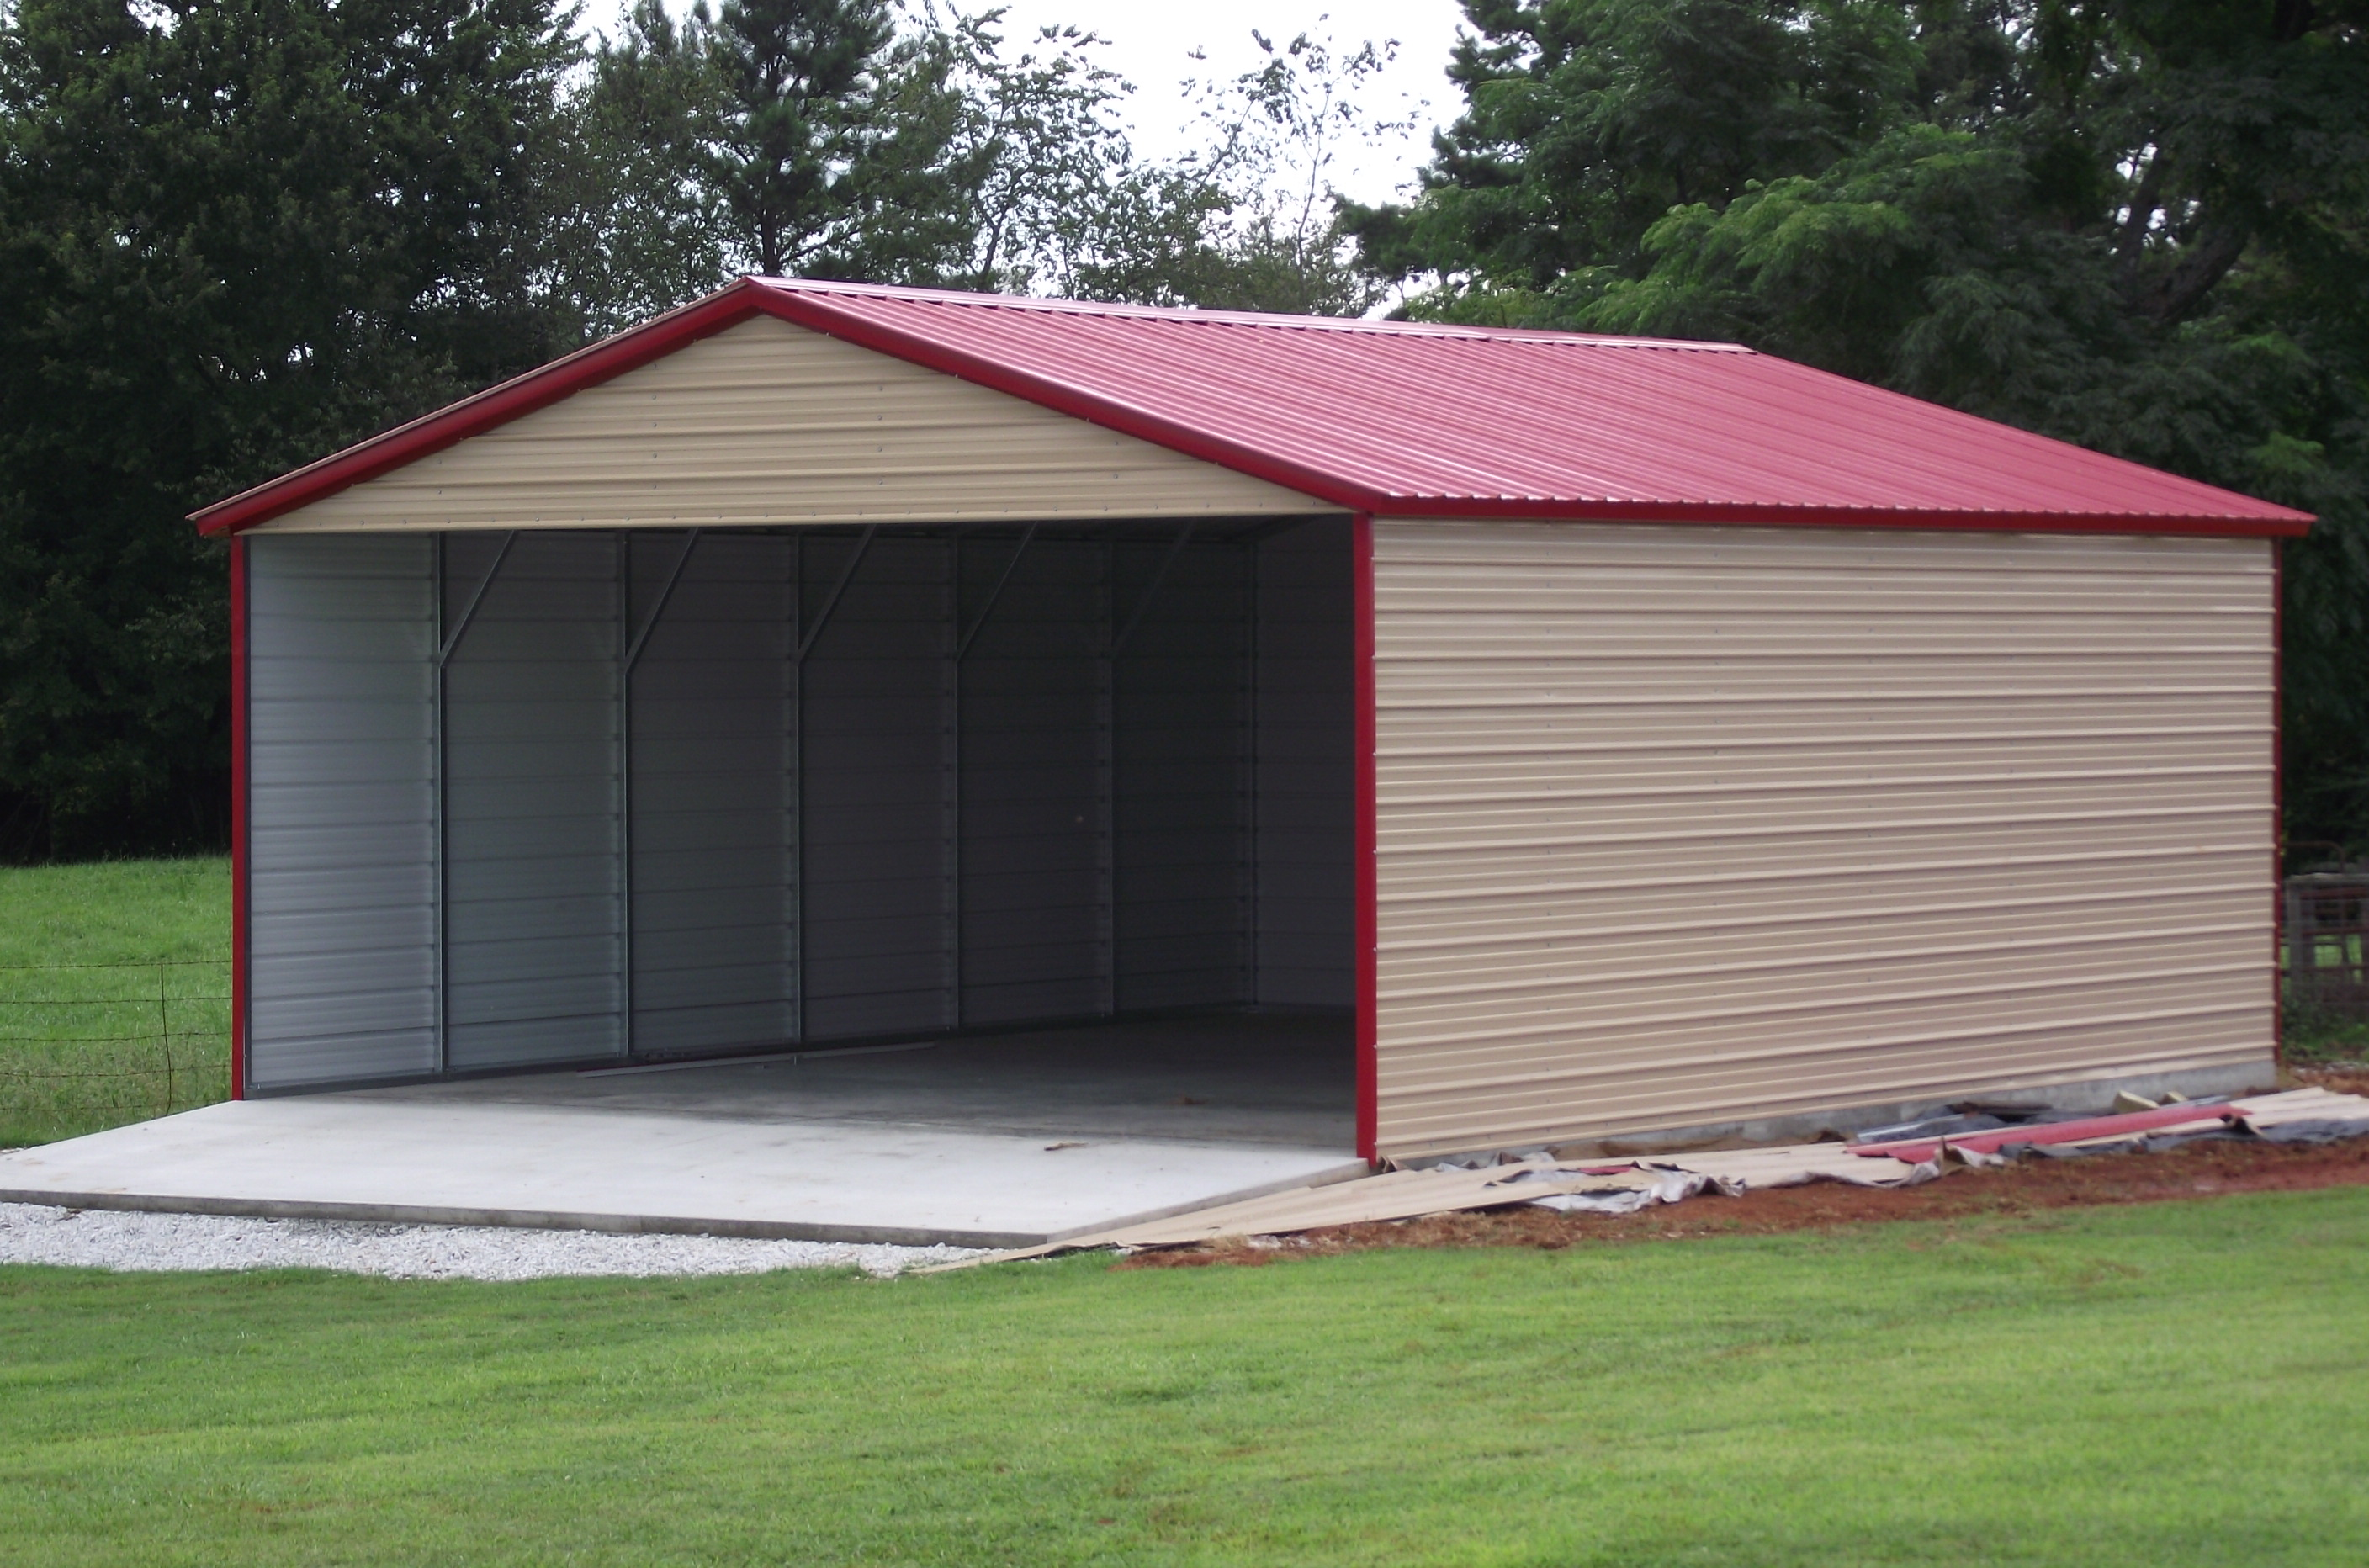 Vertical Roof Metal Carport